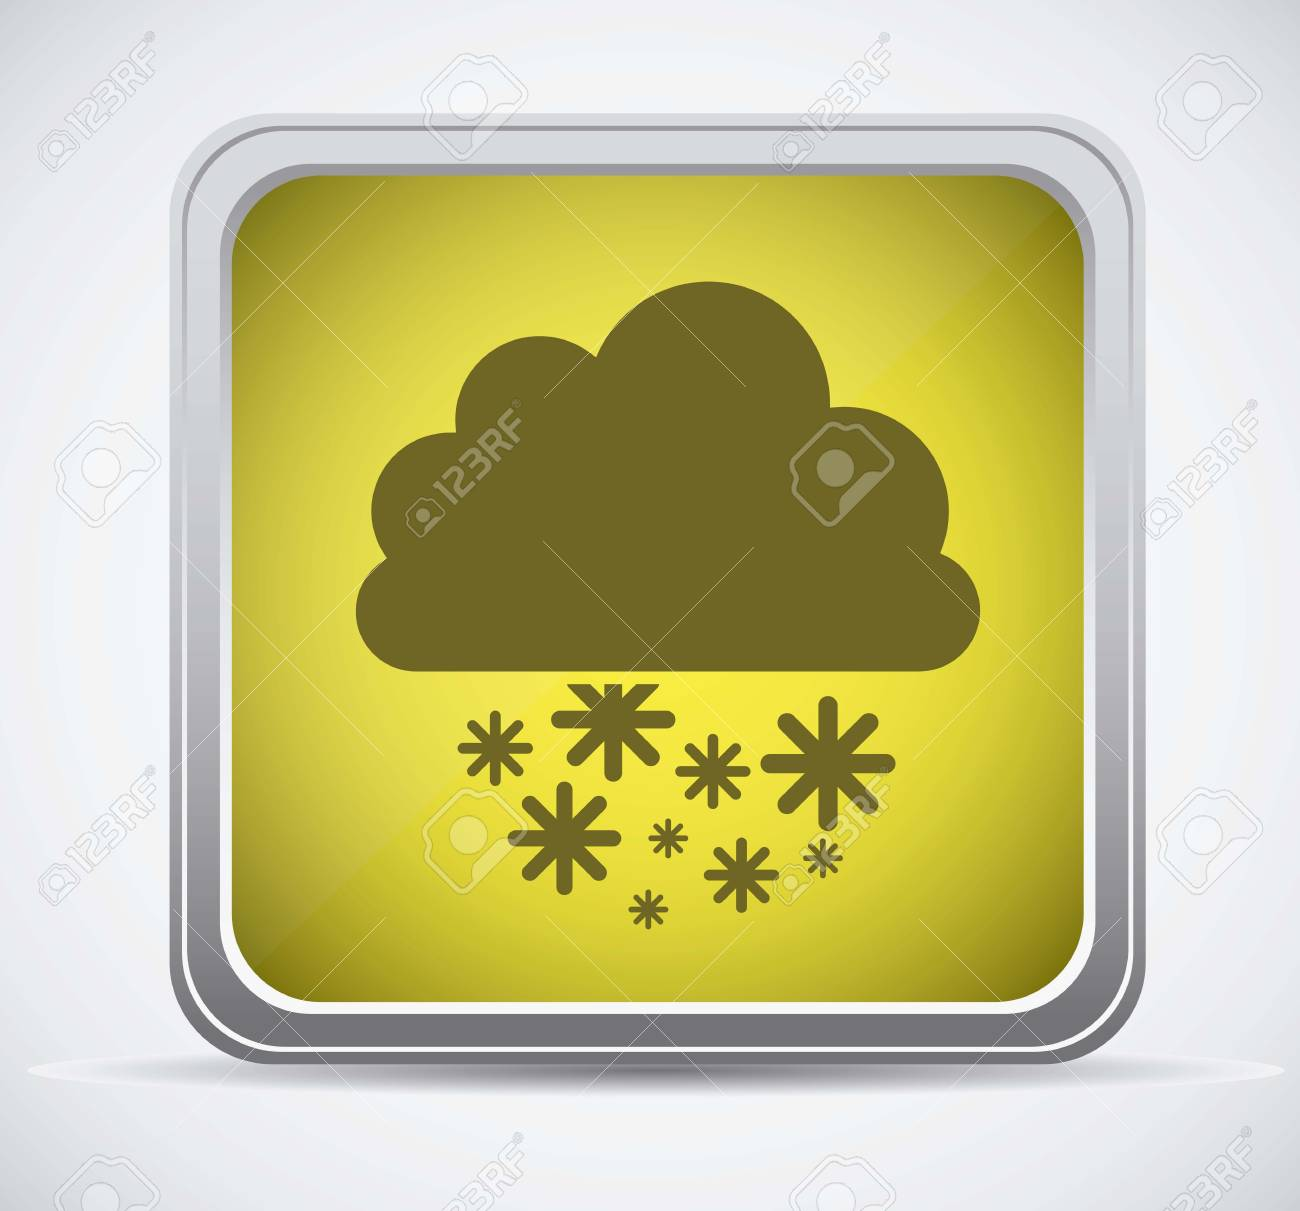 Illustration of icons sun icons of weather and seasons, vector illustration Stock Vector - 16818915